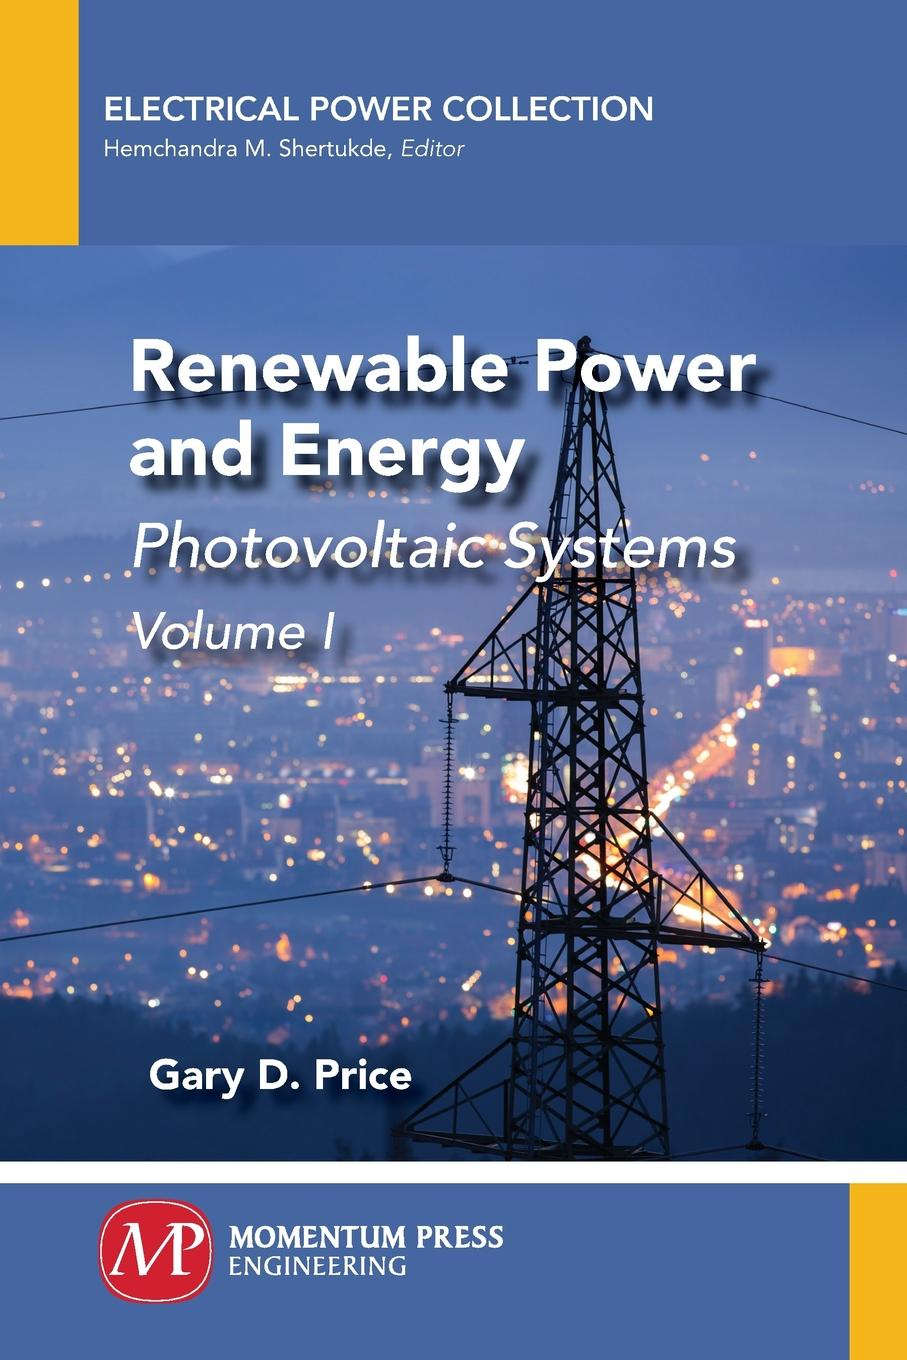 Gary D. Price Renewable Power and Energy, Volume I. Photovoltaic Systems jumaah raihan sulaiman new technique for maximum power point tracker on photovoltaic systems